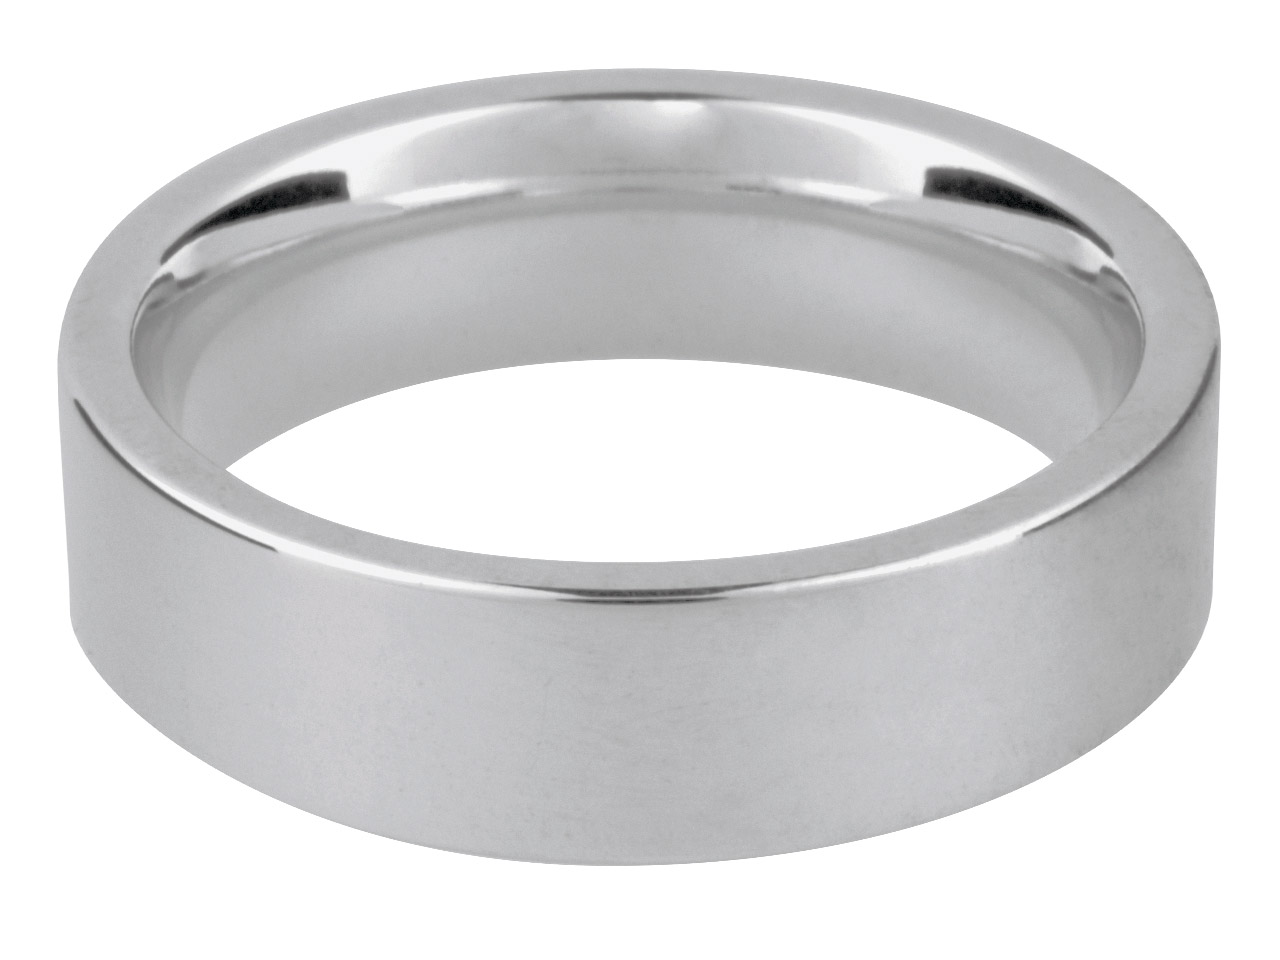 Palladium Easy Fit Wedding Ring    4.0mm Y 6.3gms Heavy Weight        Hallmarked Wall Thickness 1.86mm